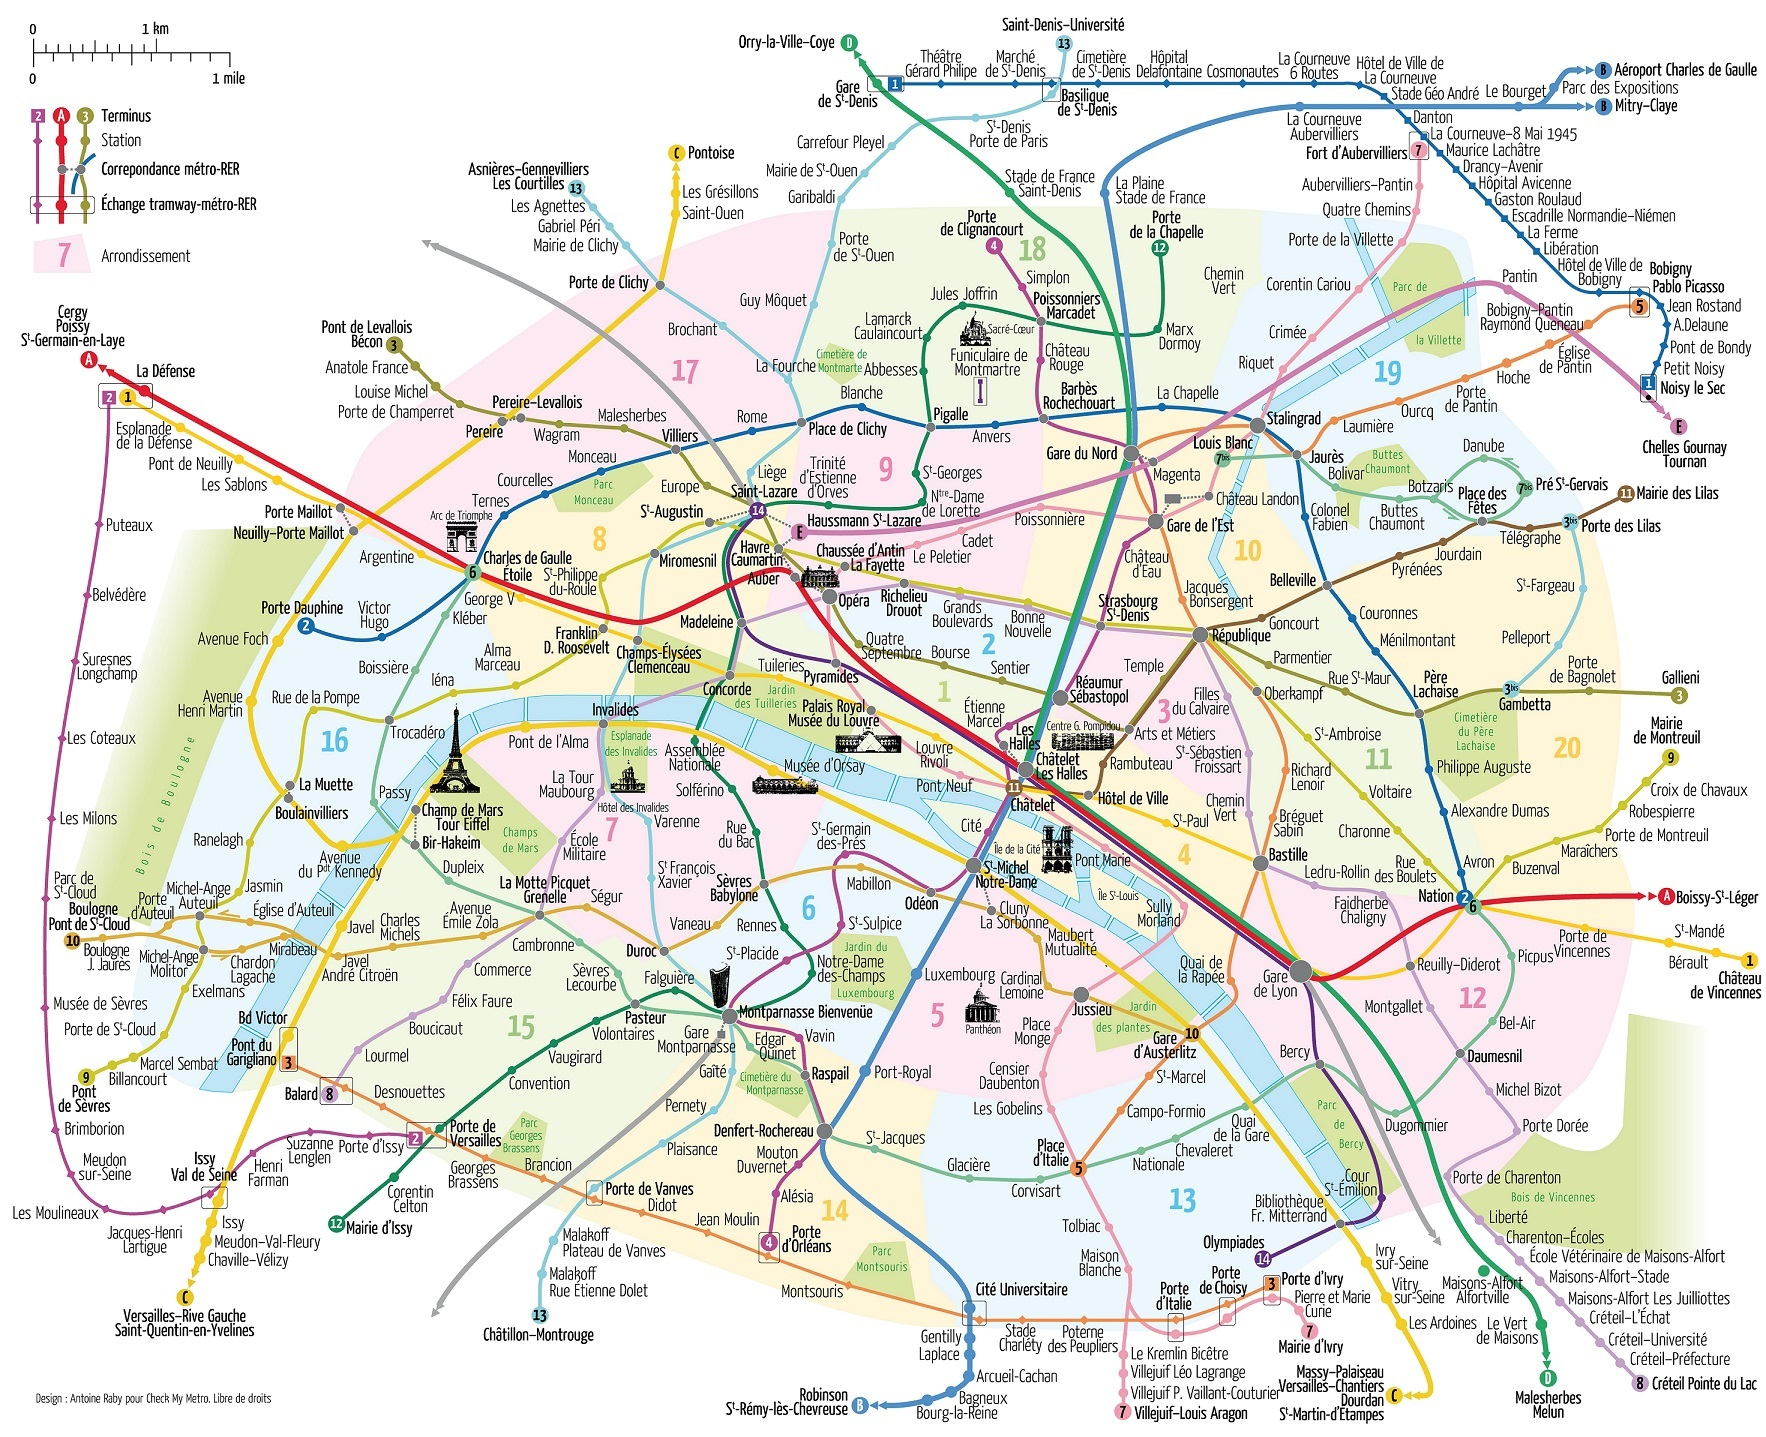 Paris Metro Map Paris France - Paris map metro